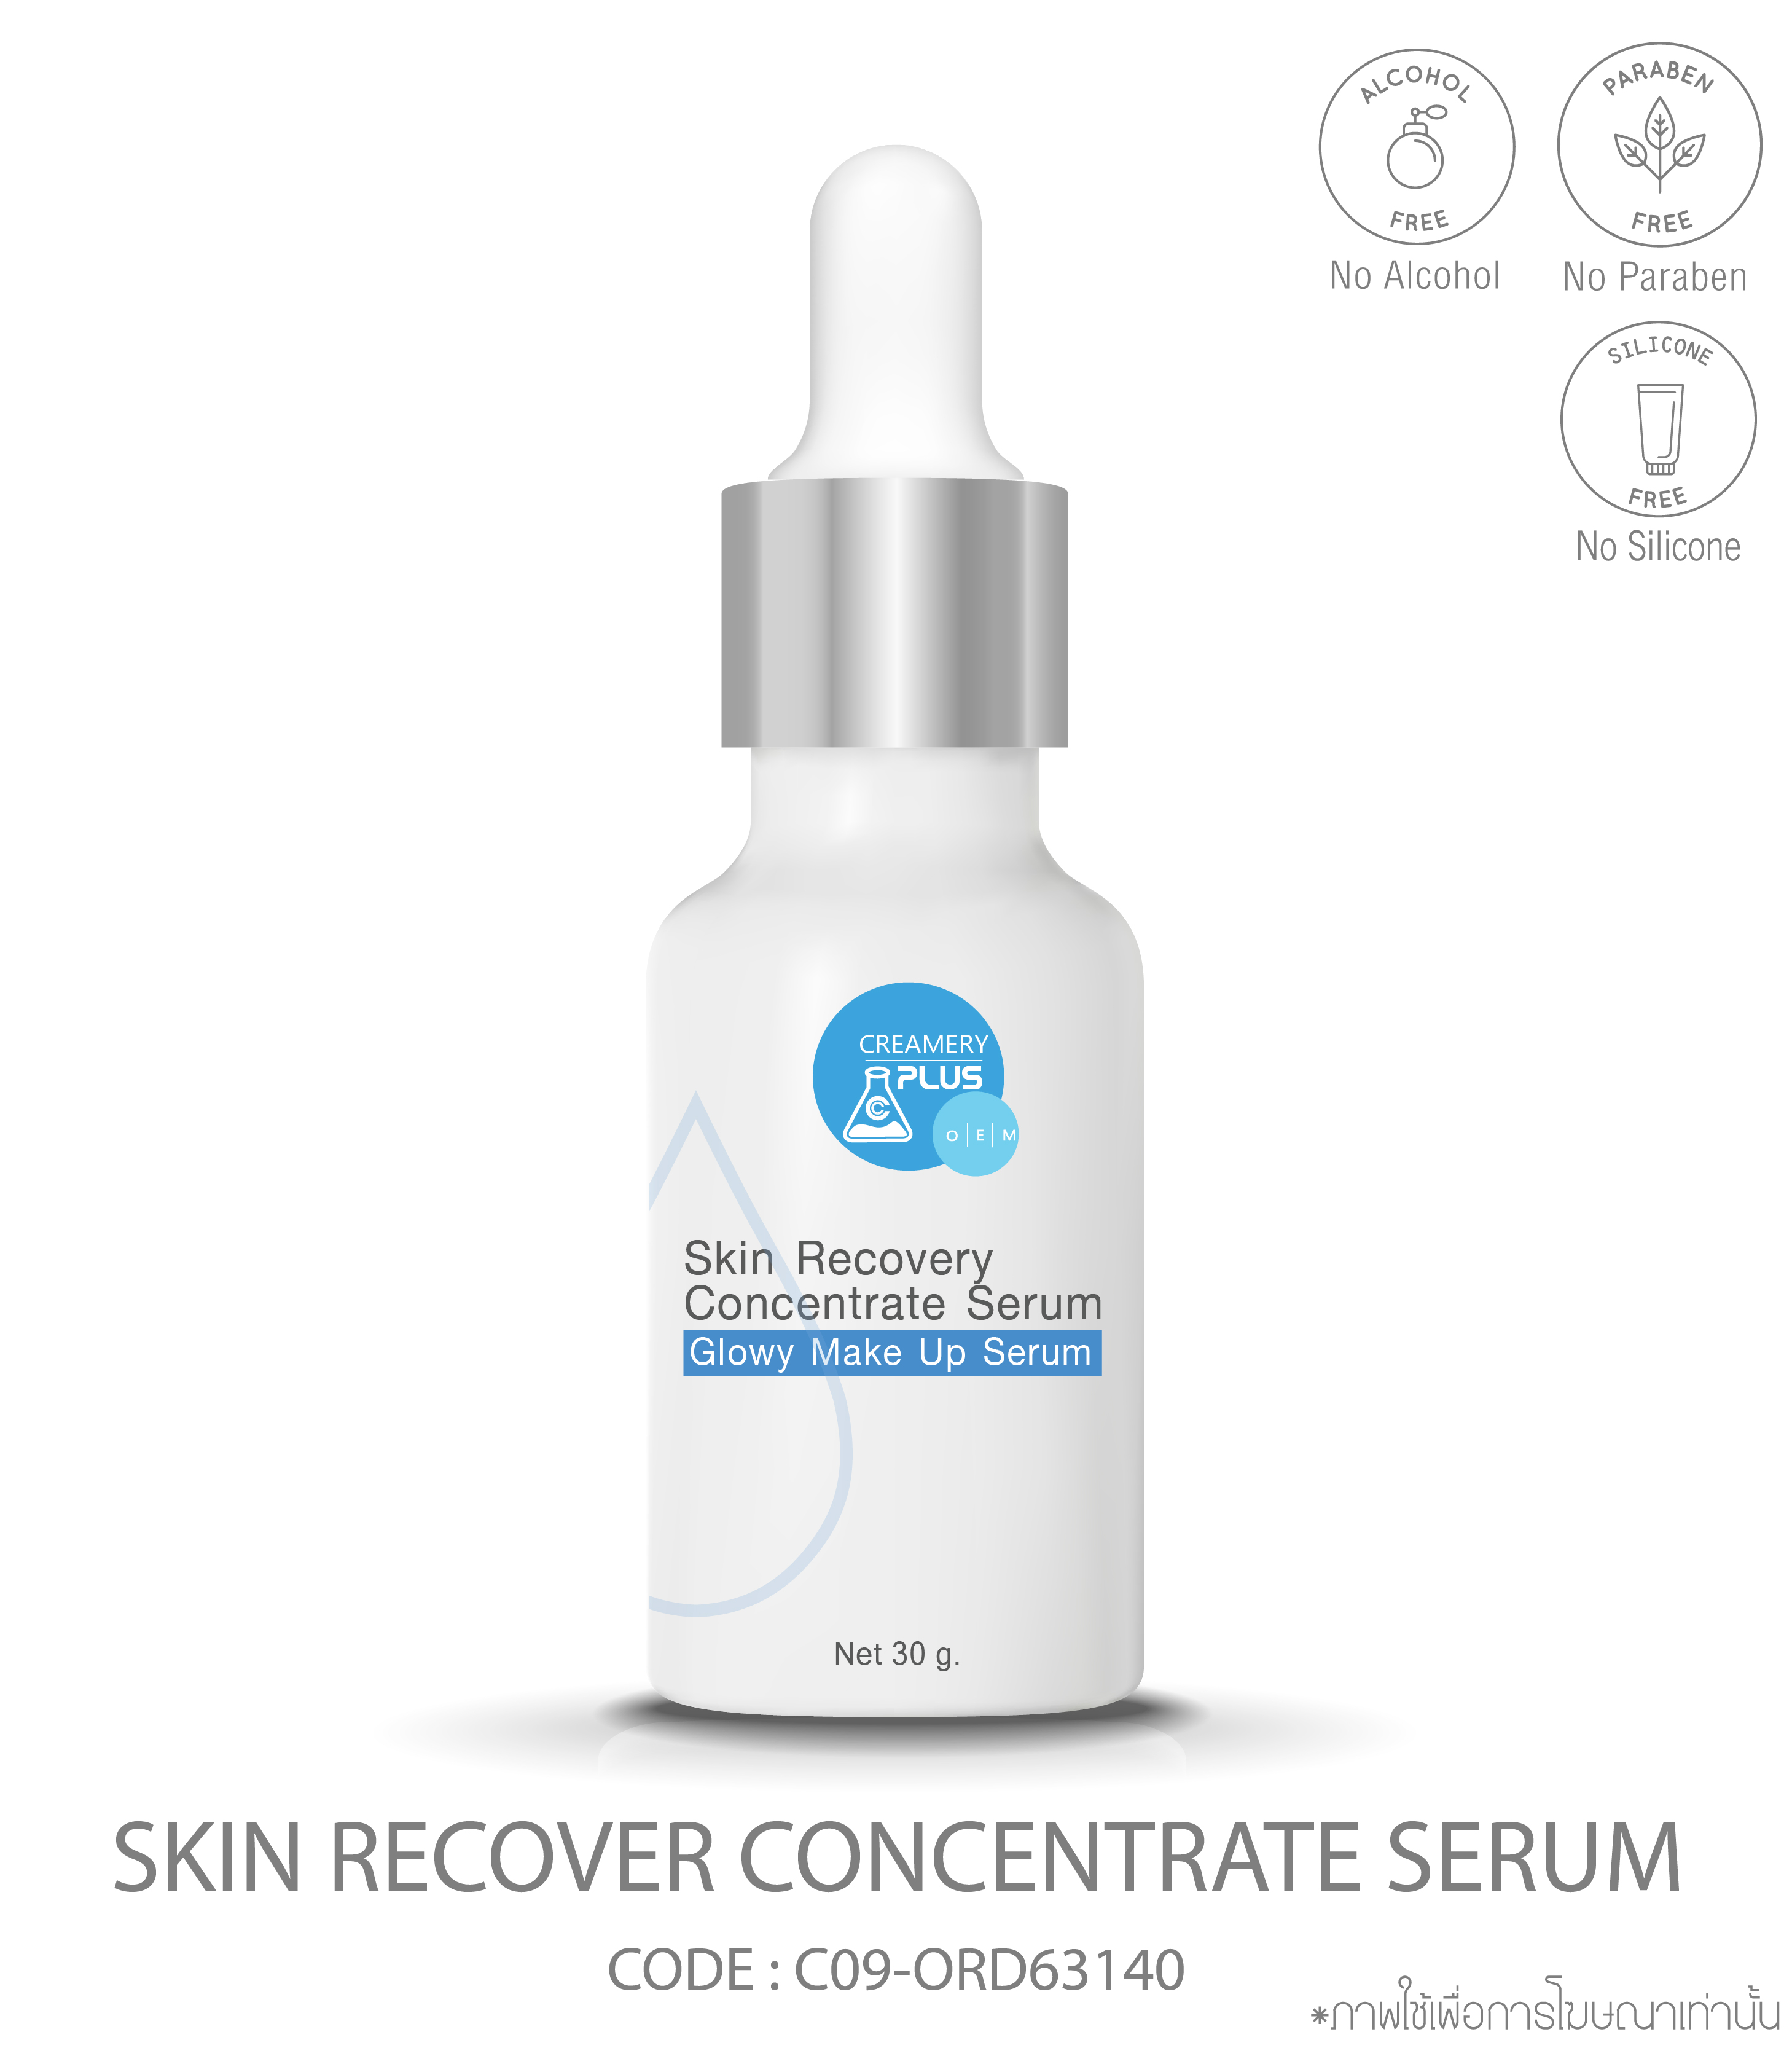 Skin Recovery Concentrate Serum